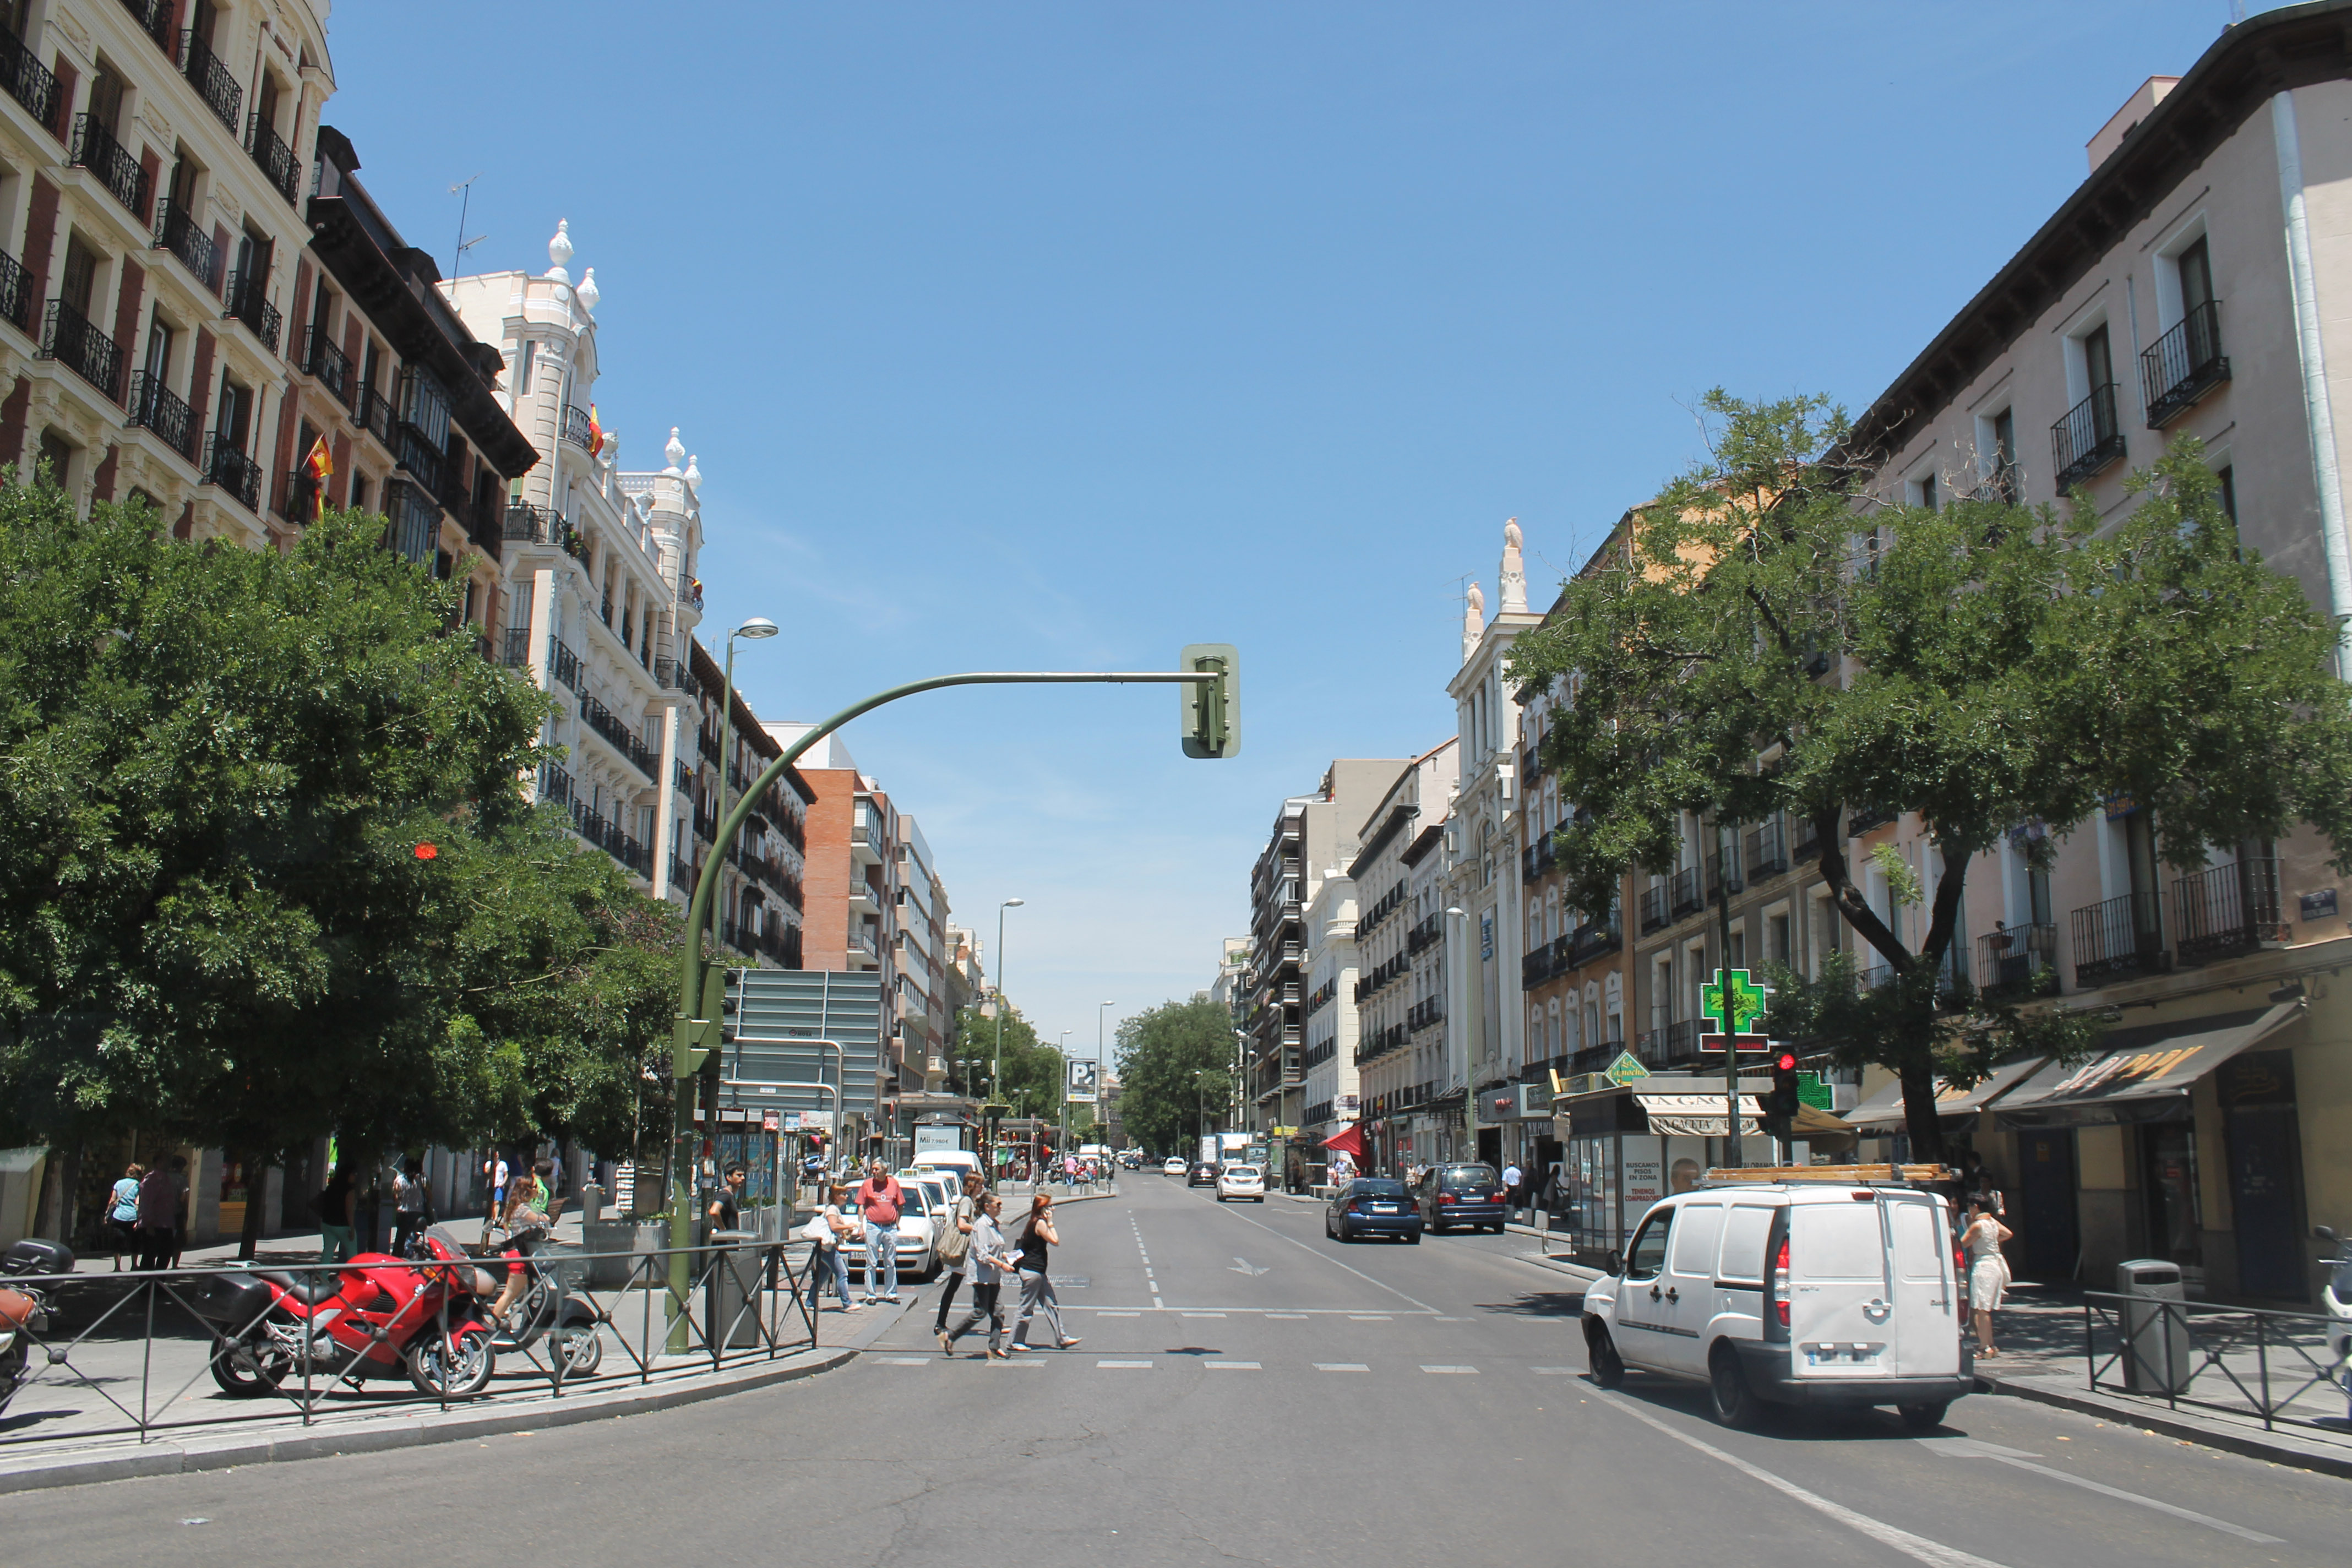 File:Calle de Fuencarral (Madrid) 01.jpg - Wikimedia Commons